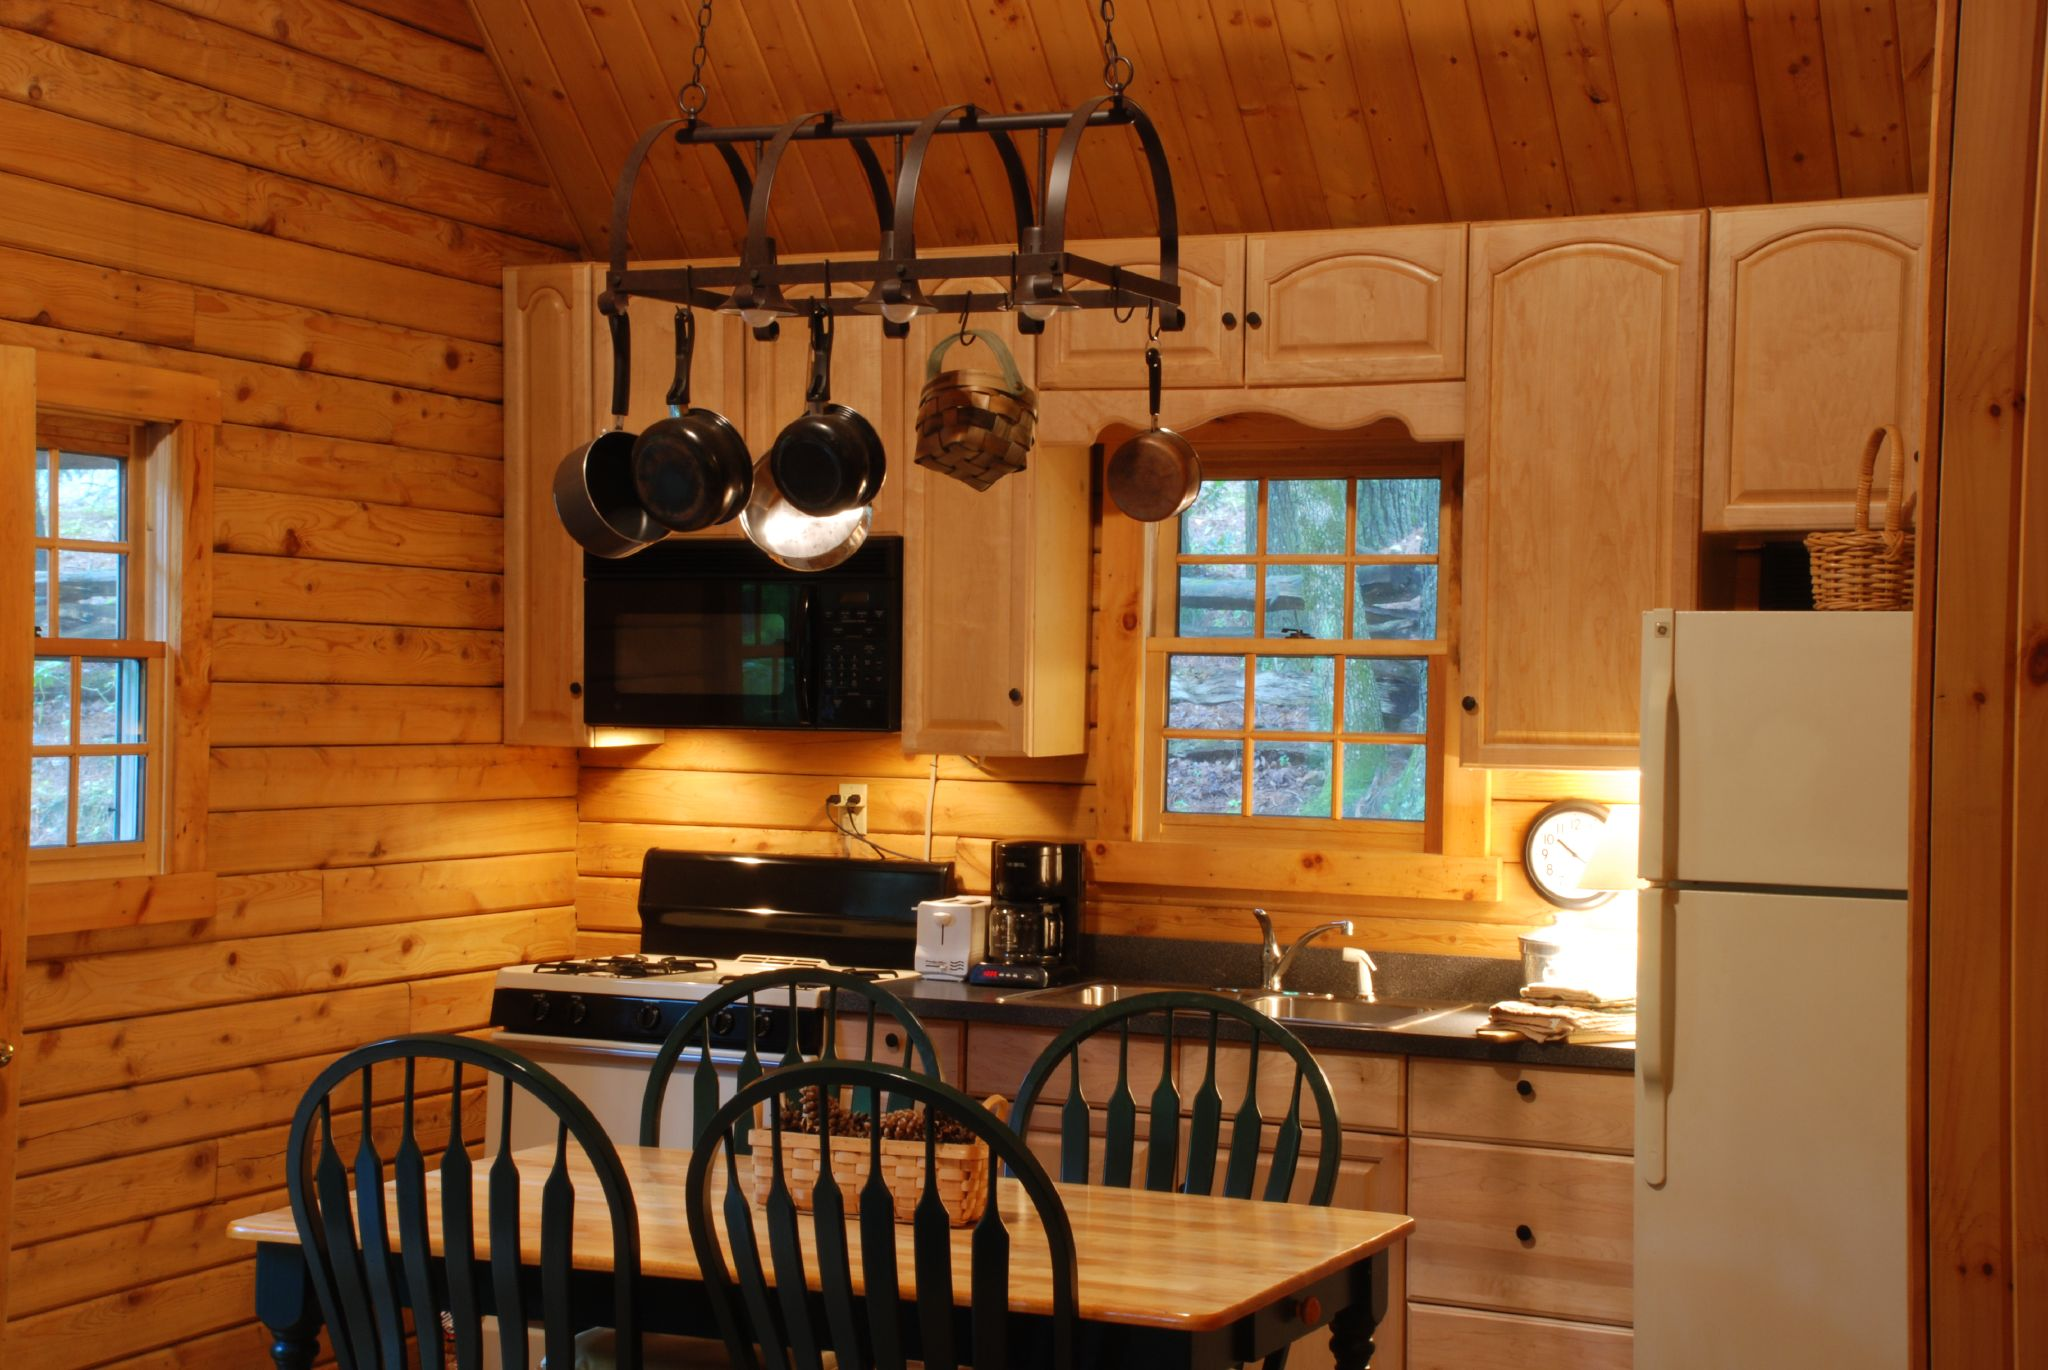 nc carolina vacation north cabins rentals bryson cabin city